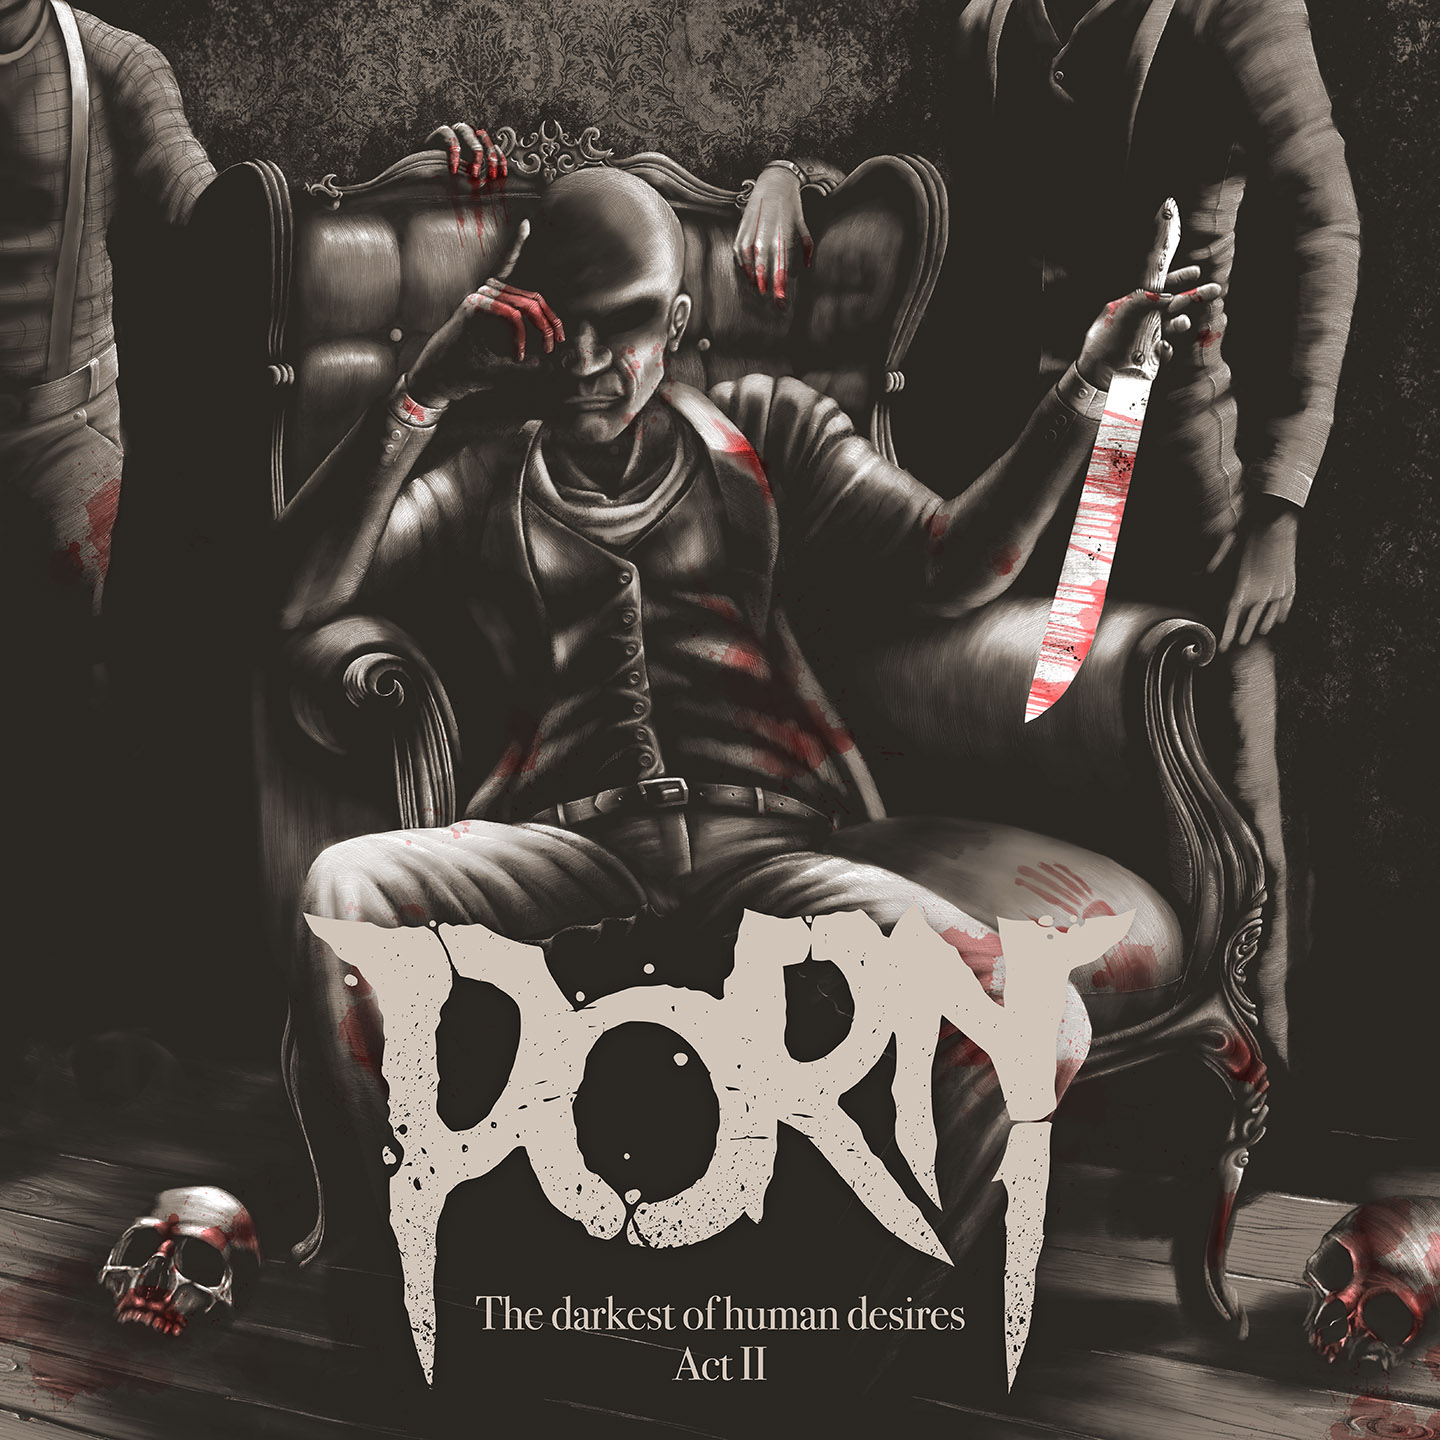 porn-the-darkest-of-human-desires-act-ii-mr-strangler-ist-zurueck-album-review